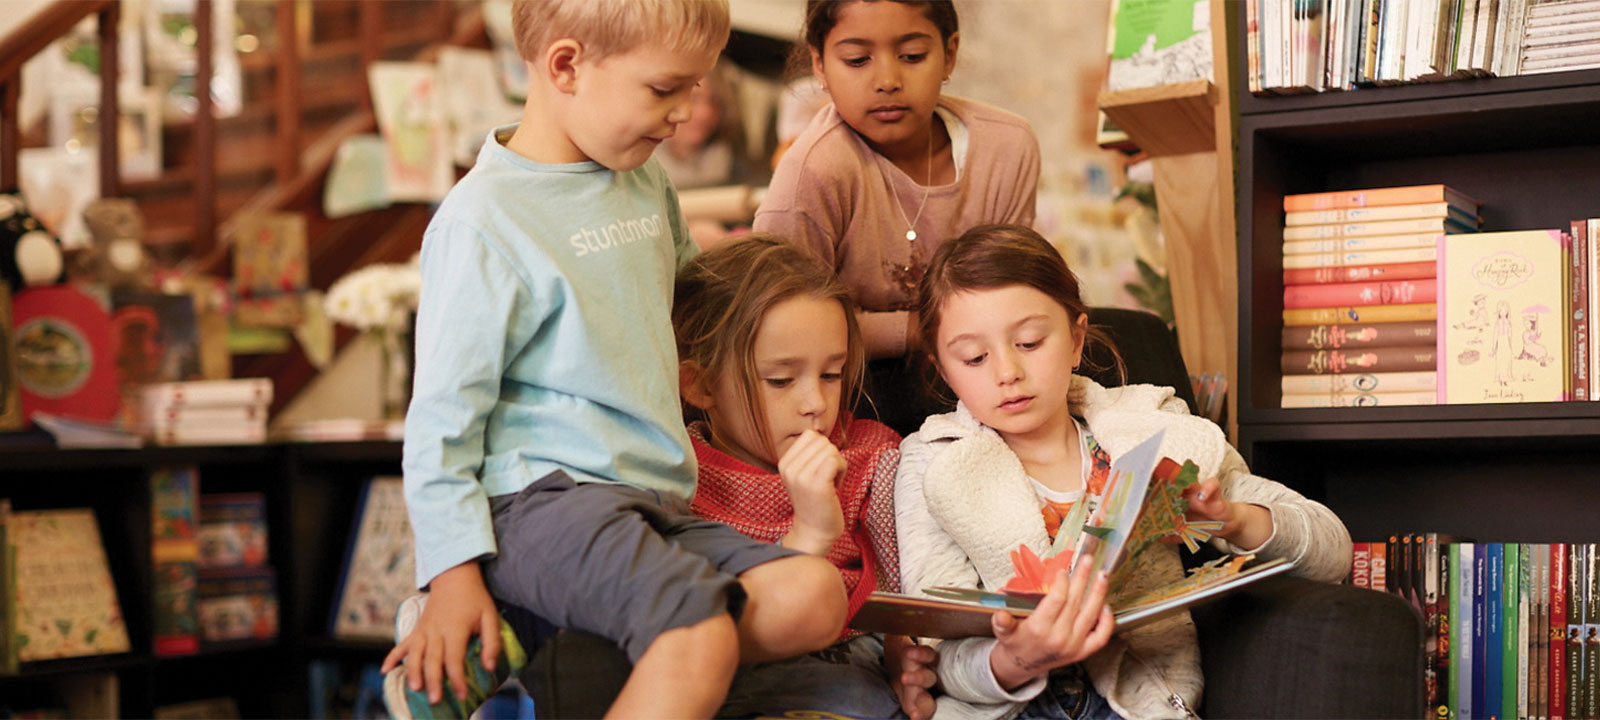 Kids gathered around a book reading